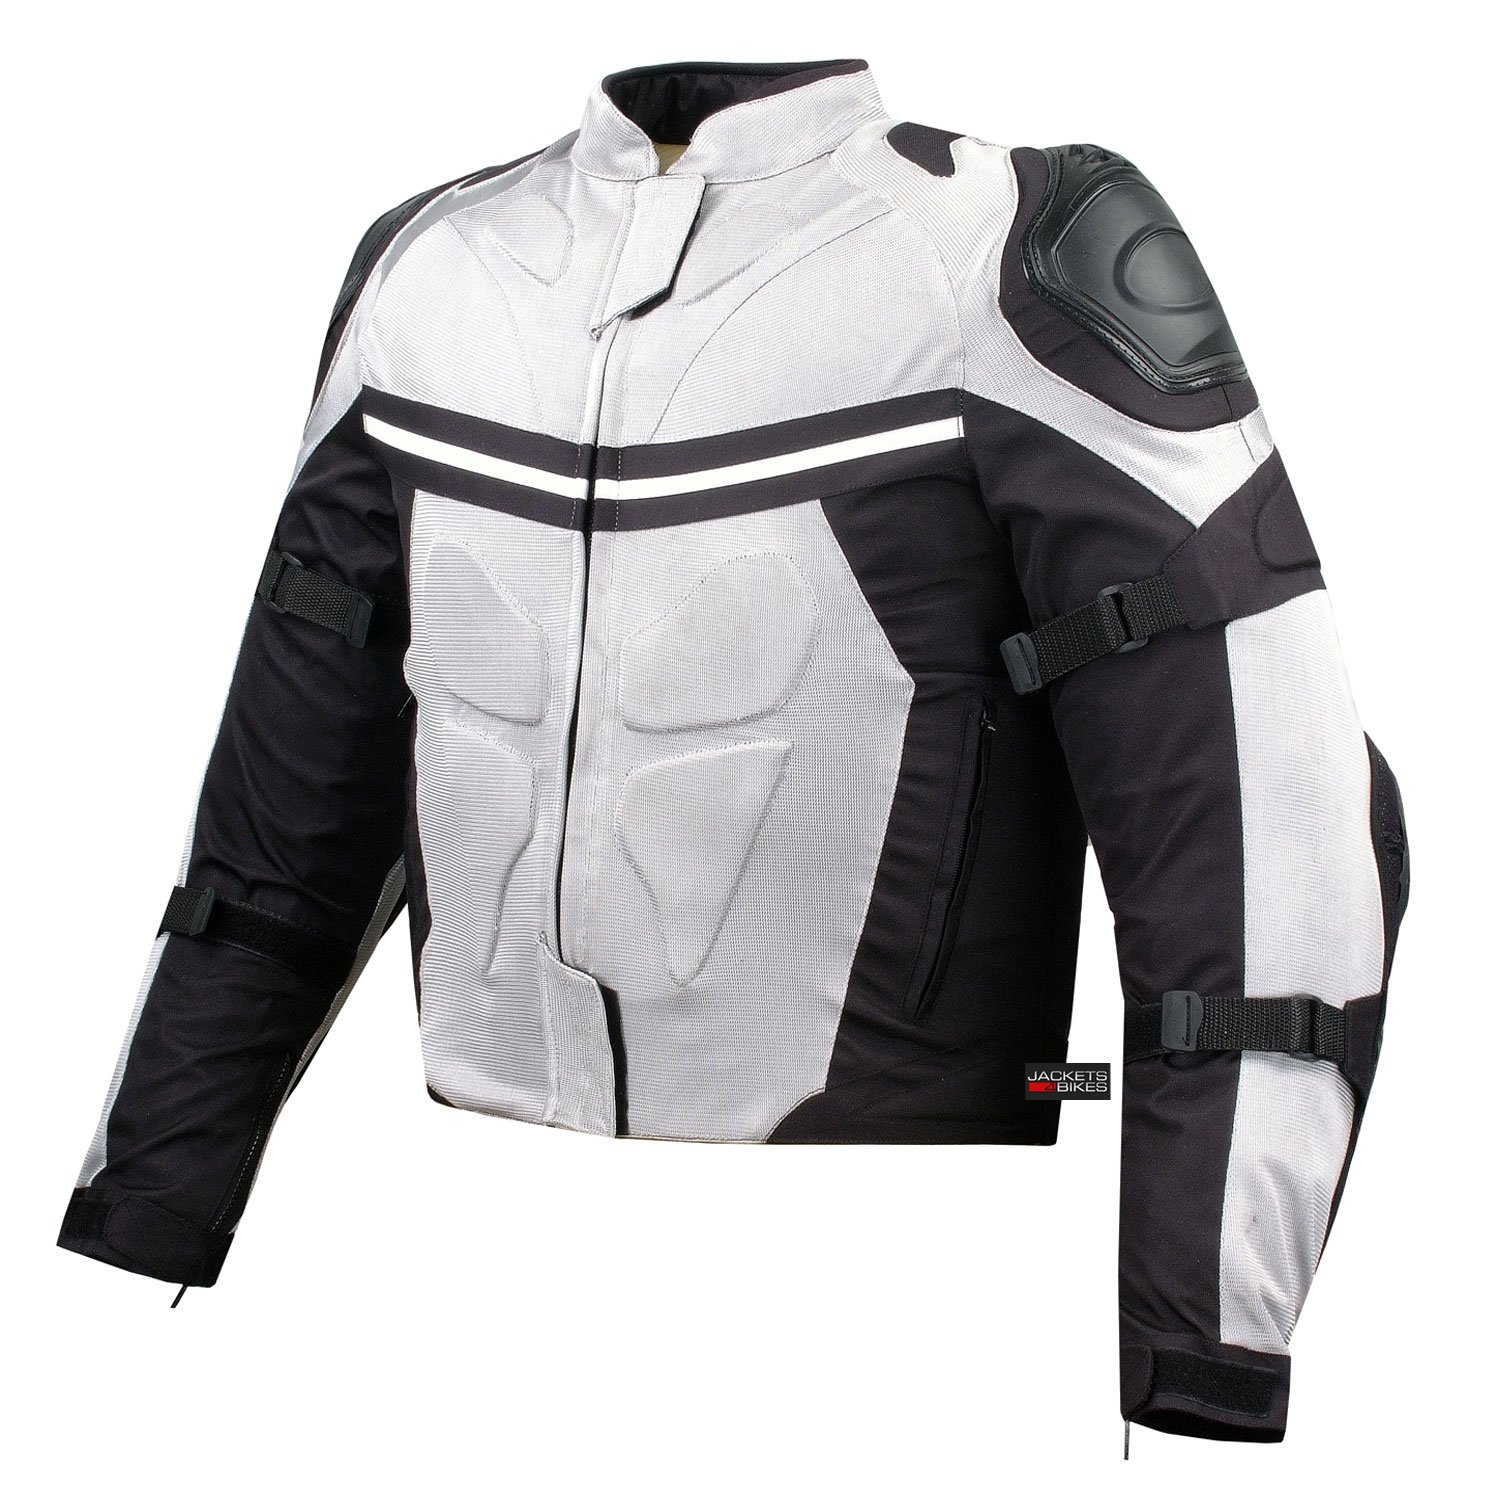 6 Best Summer Motorcycle Jackets 2016